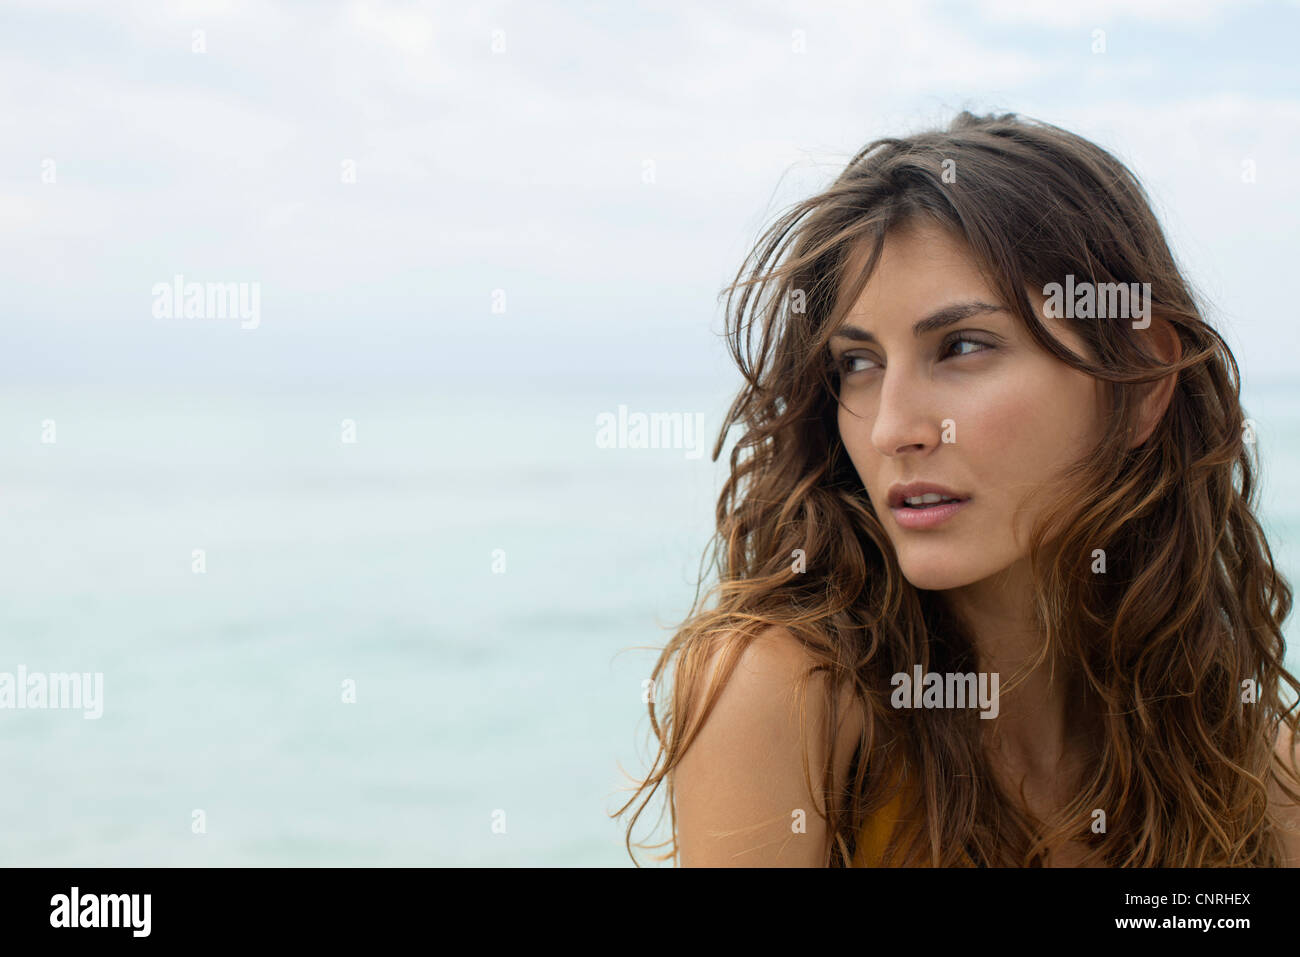 Young woman looking over shoulder, portrait - Stock Image